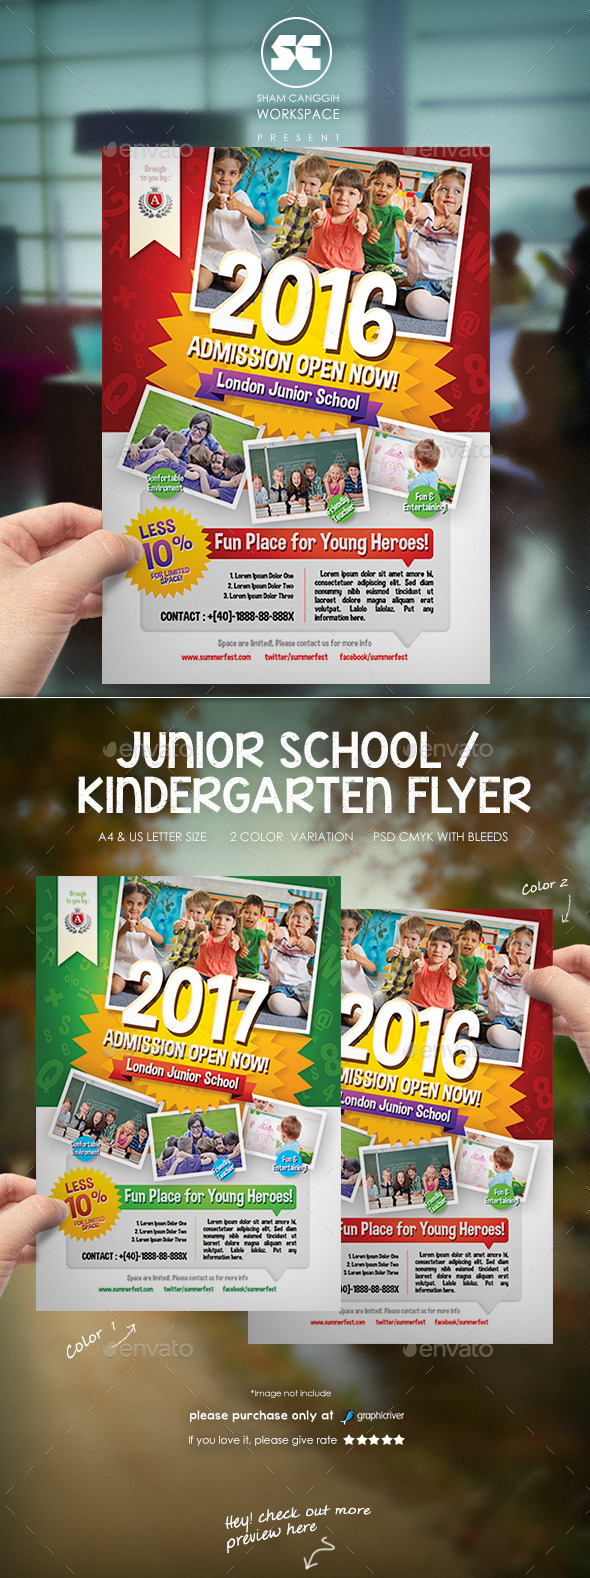 kindergarten junior school flyer scworkspace flyer templates designed exclusively for education school kindergarten or any of use fully editable image logo can be quickly added or replaced in smart